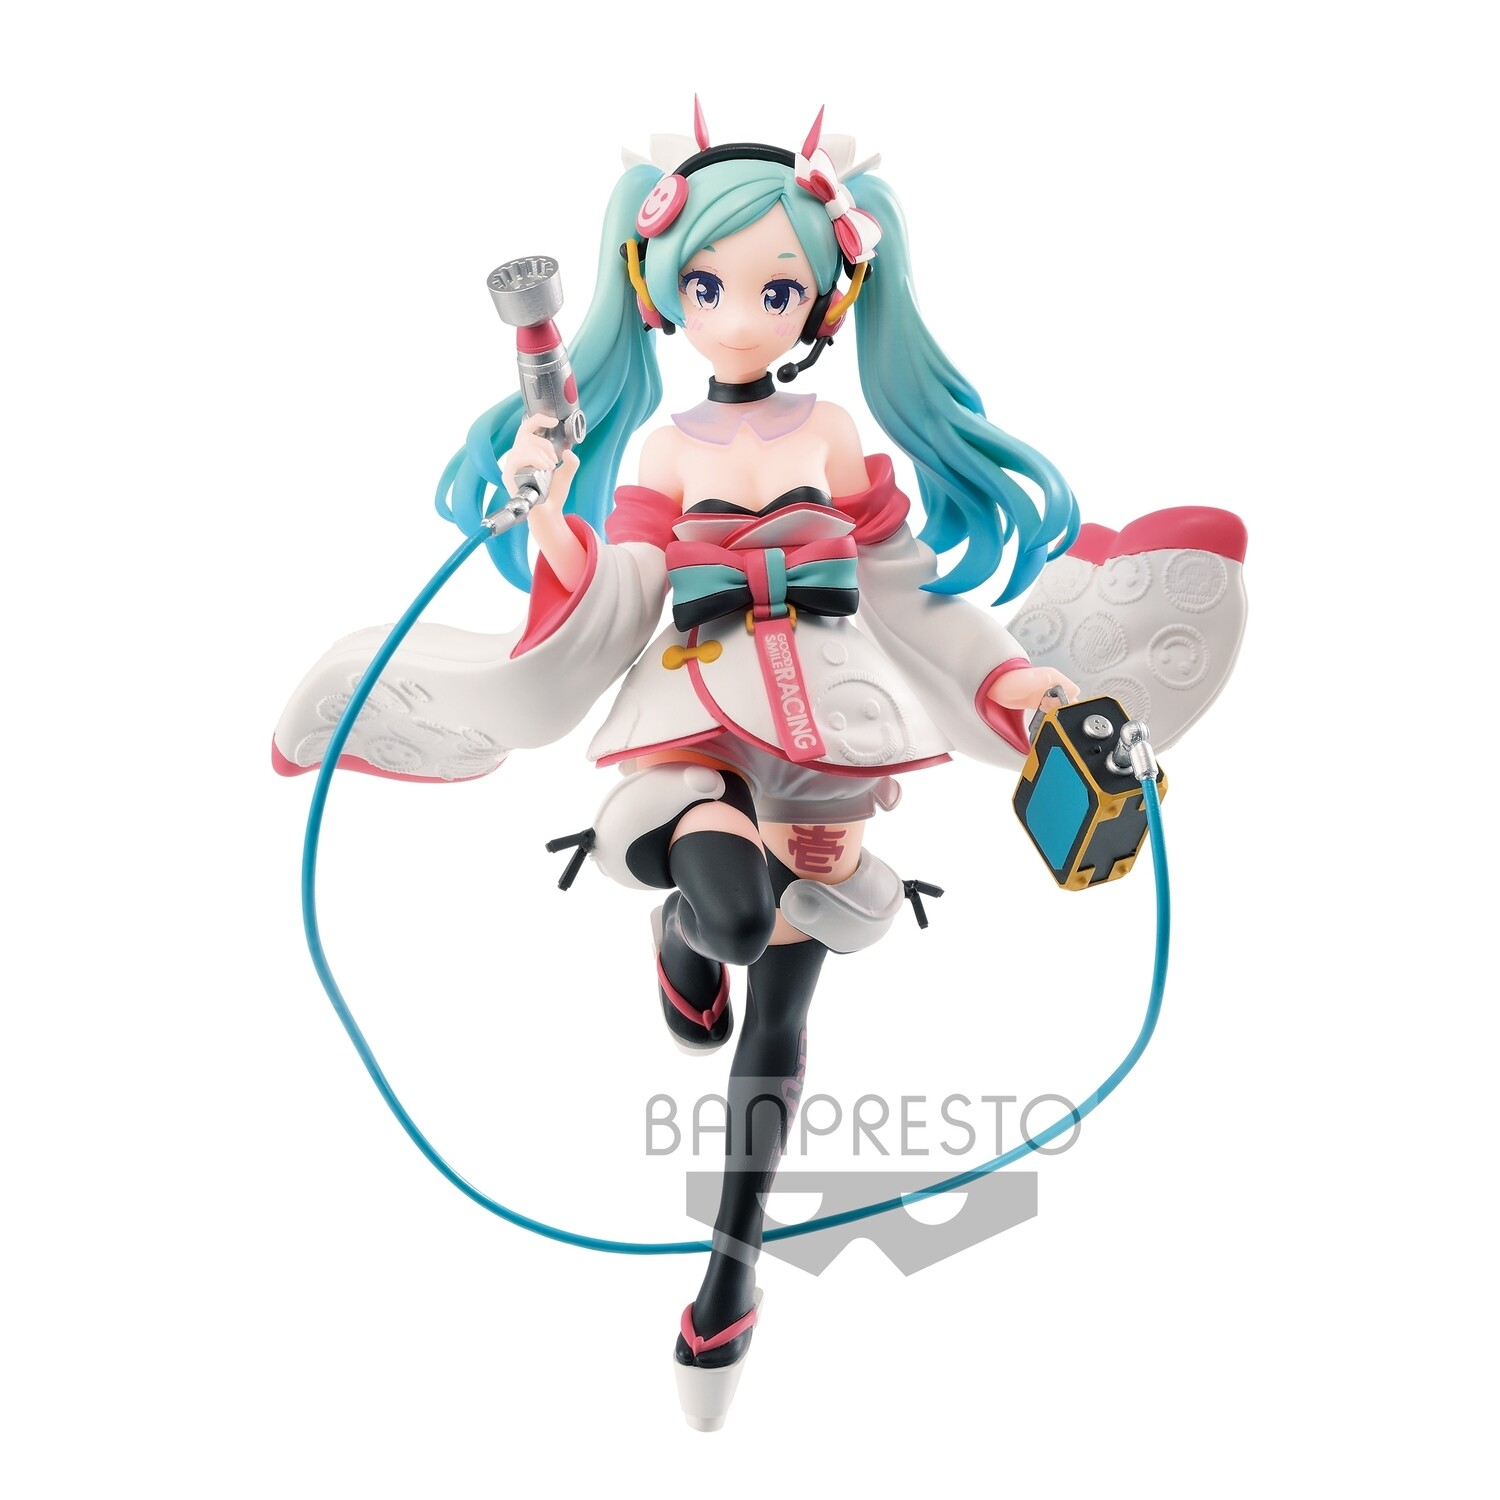 PRE-ORDER Banpresto Espresto Est - Dress & Pattern Racing Miku 2020 Kimono Ver.